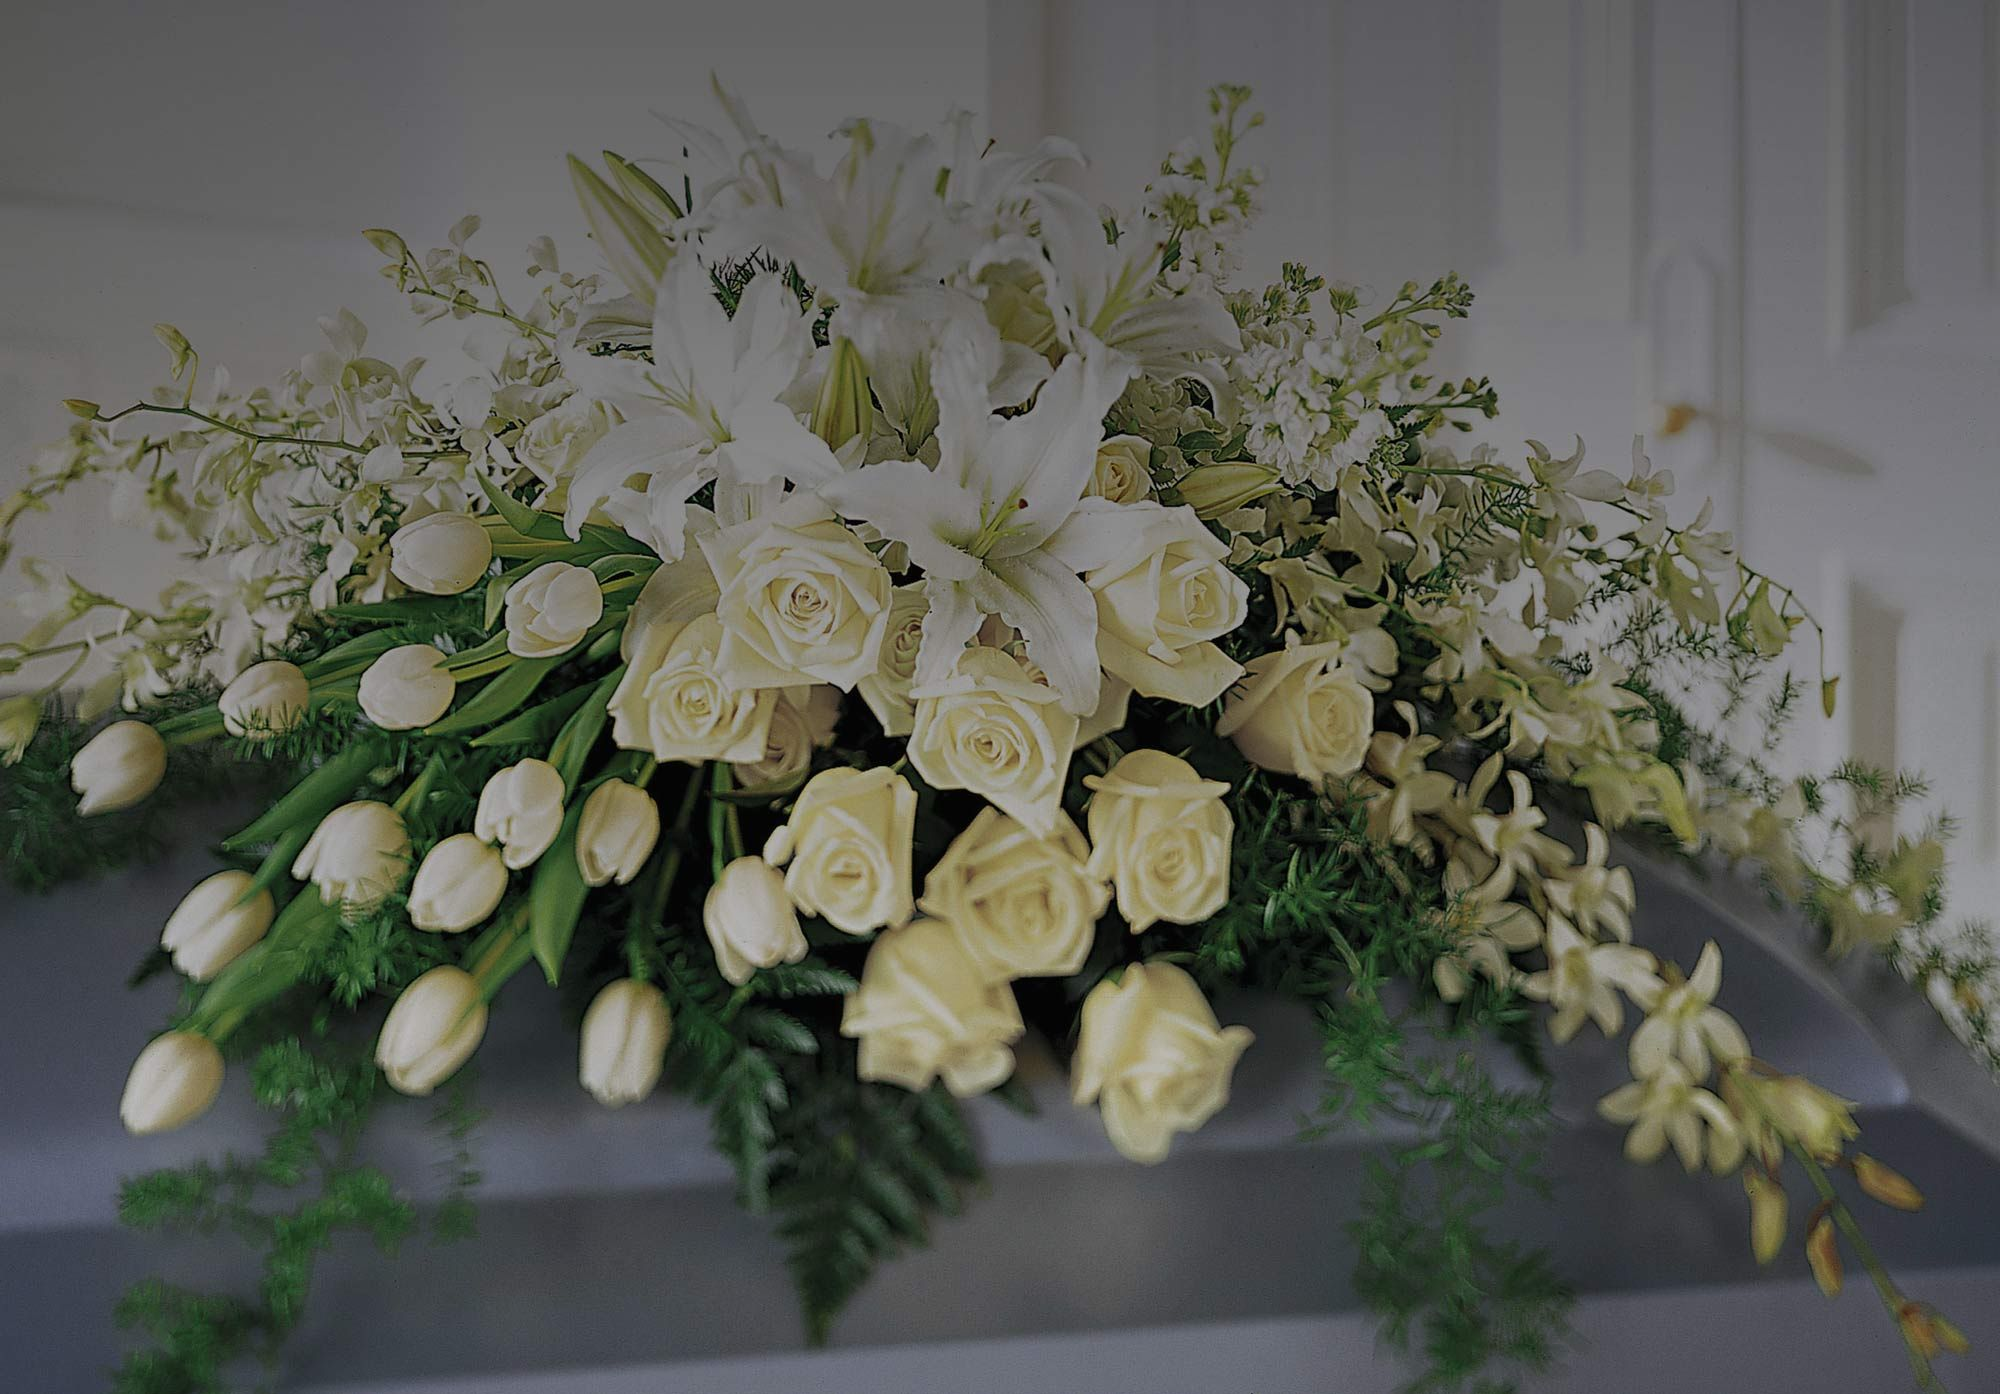 Florists for funerals social bookmarking pinterest funeral pay respect to your loved ones with flowers for funerals from funeral flowers london we create touching funeral sympathy arrangements for any funeral type izmirmasajfo